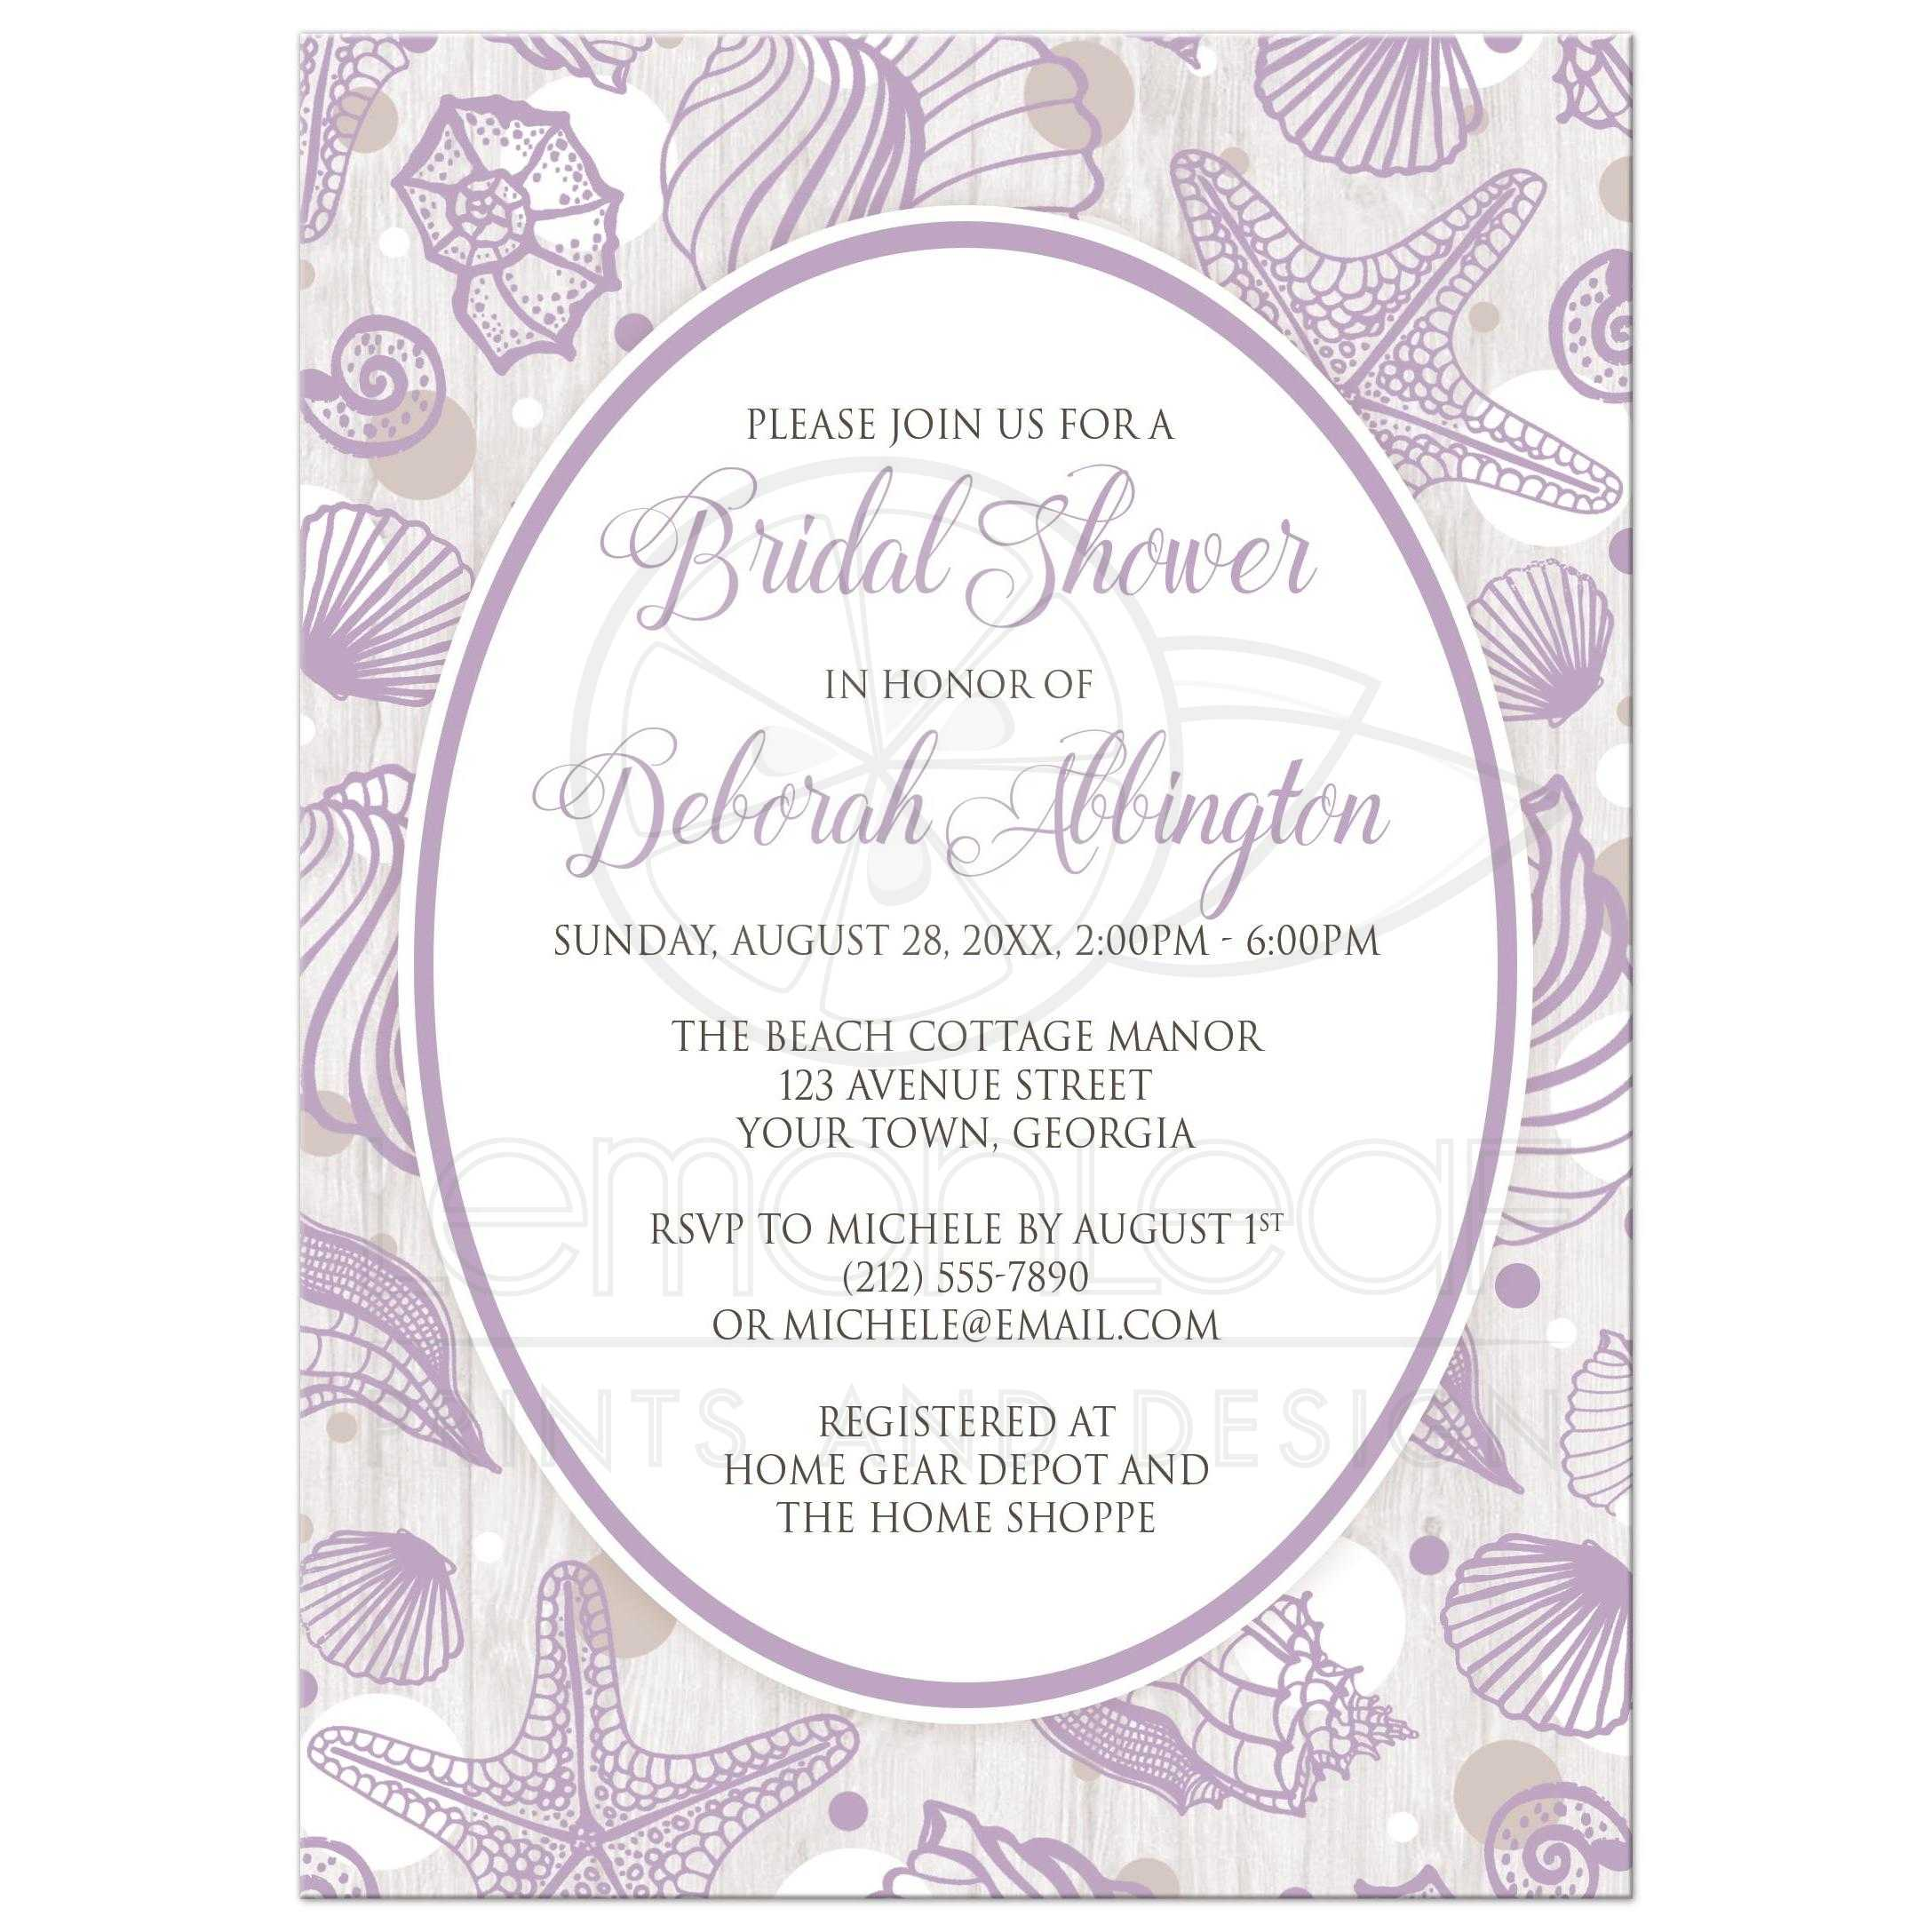 Shower Invitations Beach Purple Seashell Whitewashed Wood